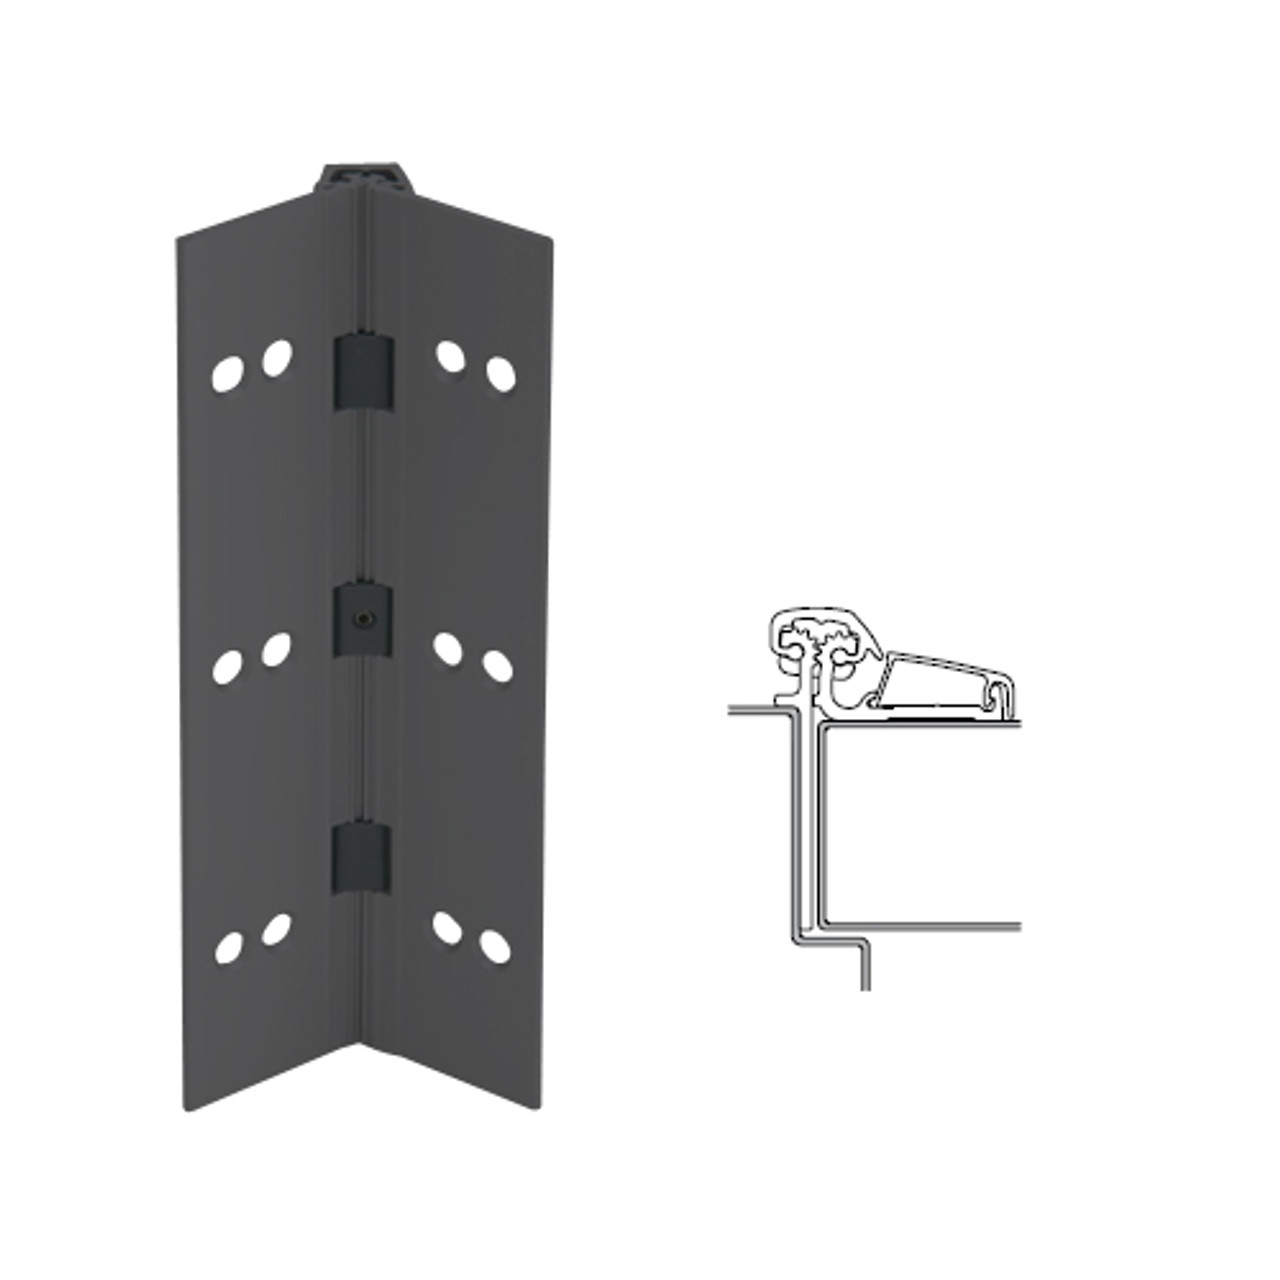 054XY-315AN-83-WD IVES Adjustable Half Surface Continuous Geared Hinges with Wood Screws in Anodized Black